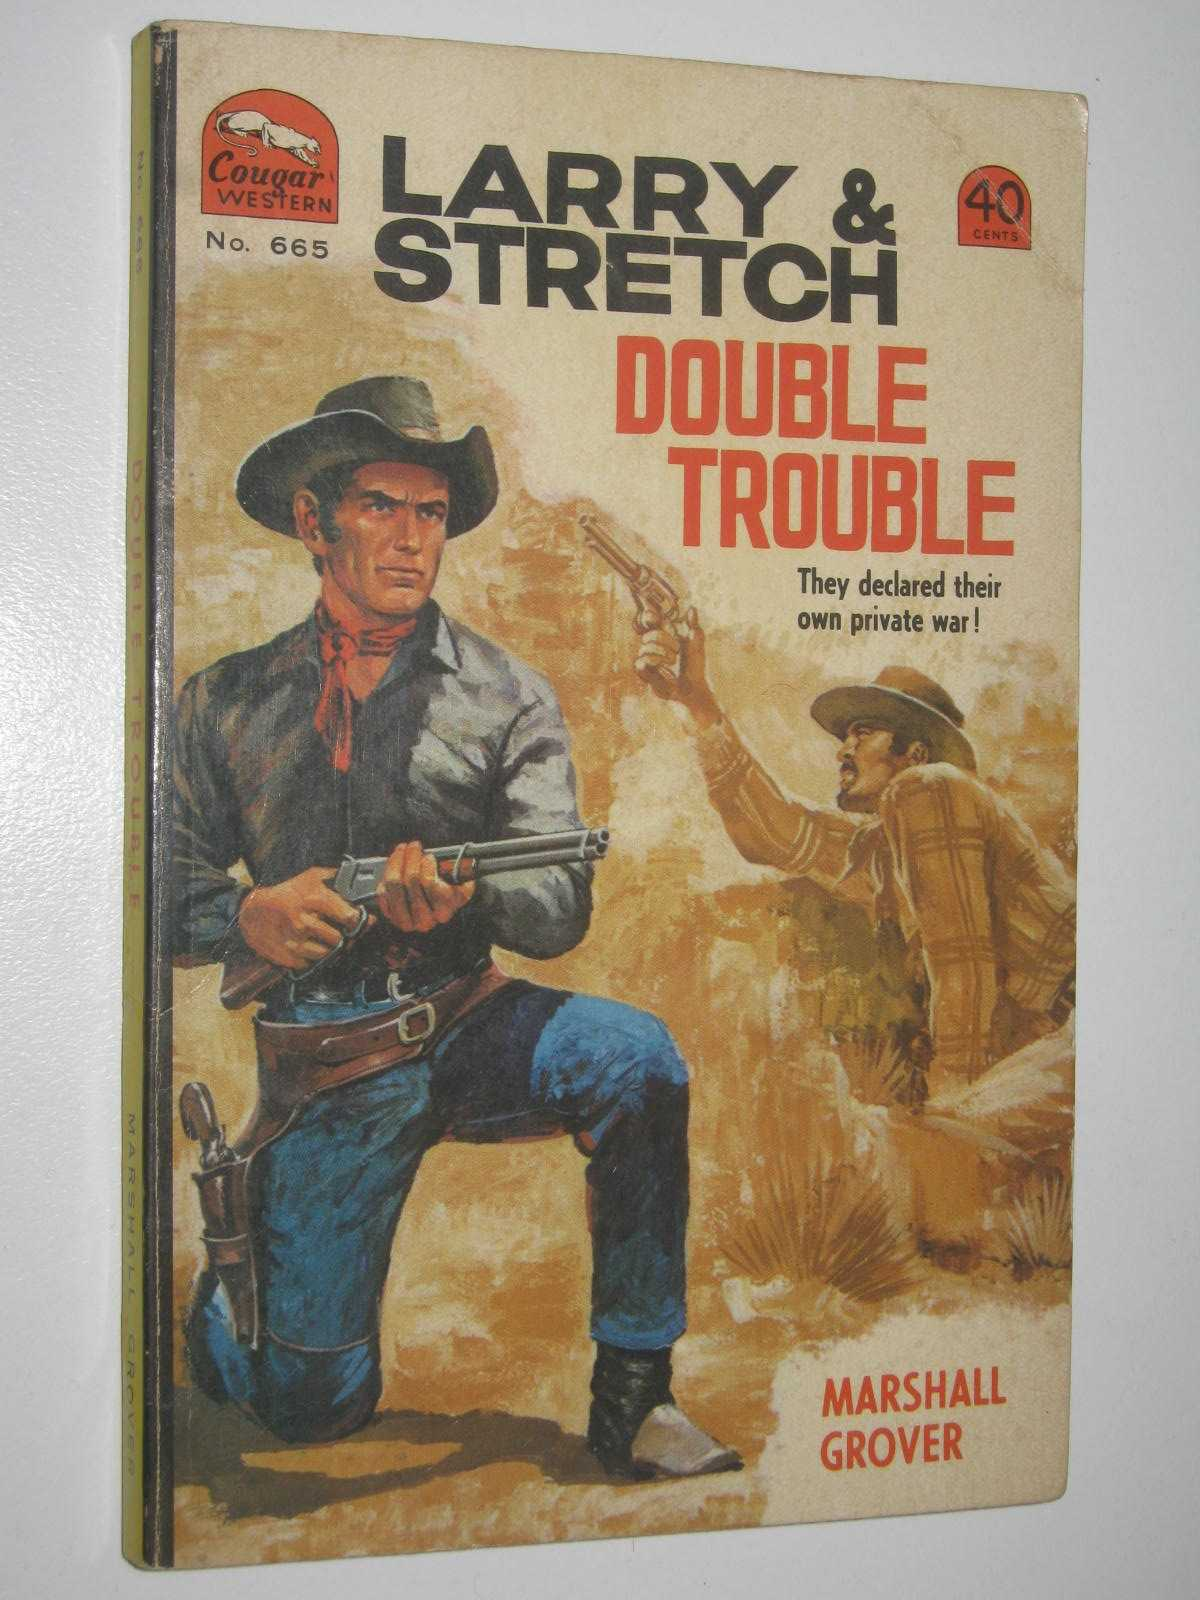 Image for Double Trouble - Larry and Stretch [Cougar Western] Series #665